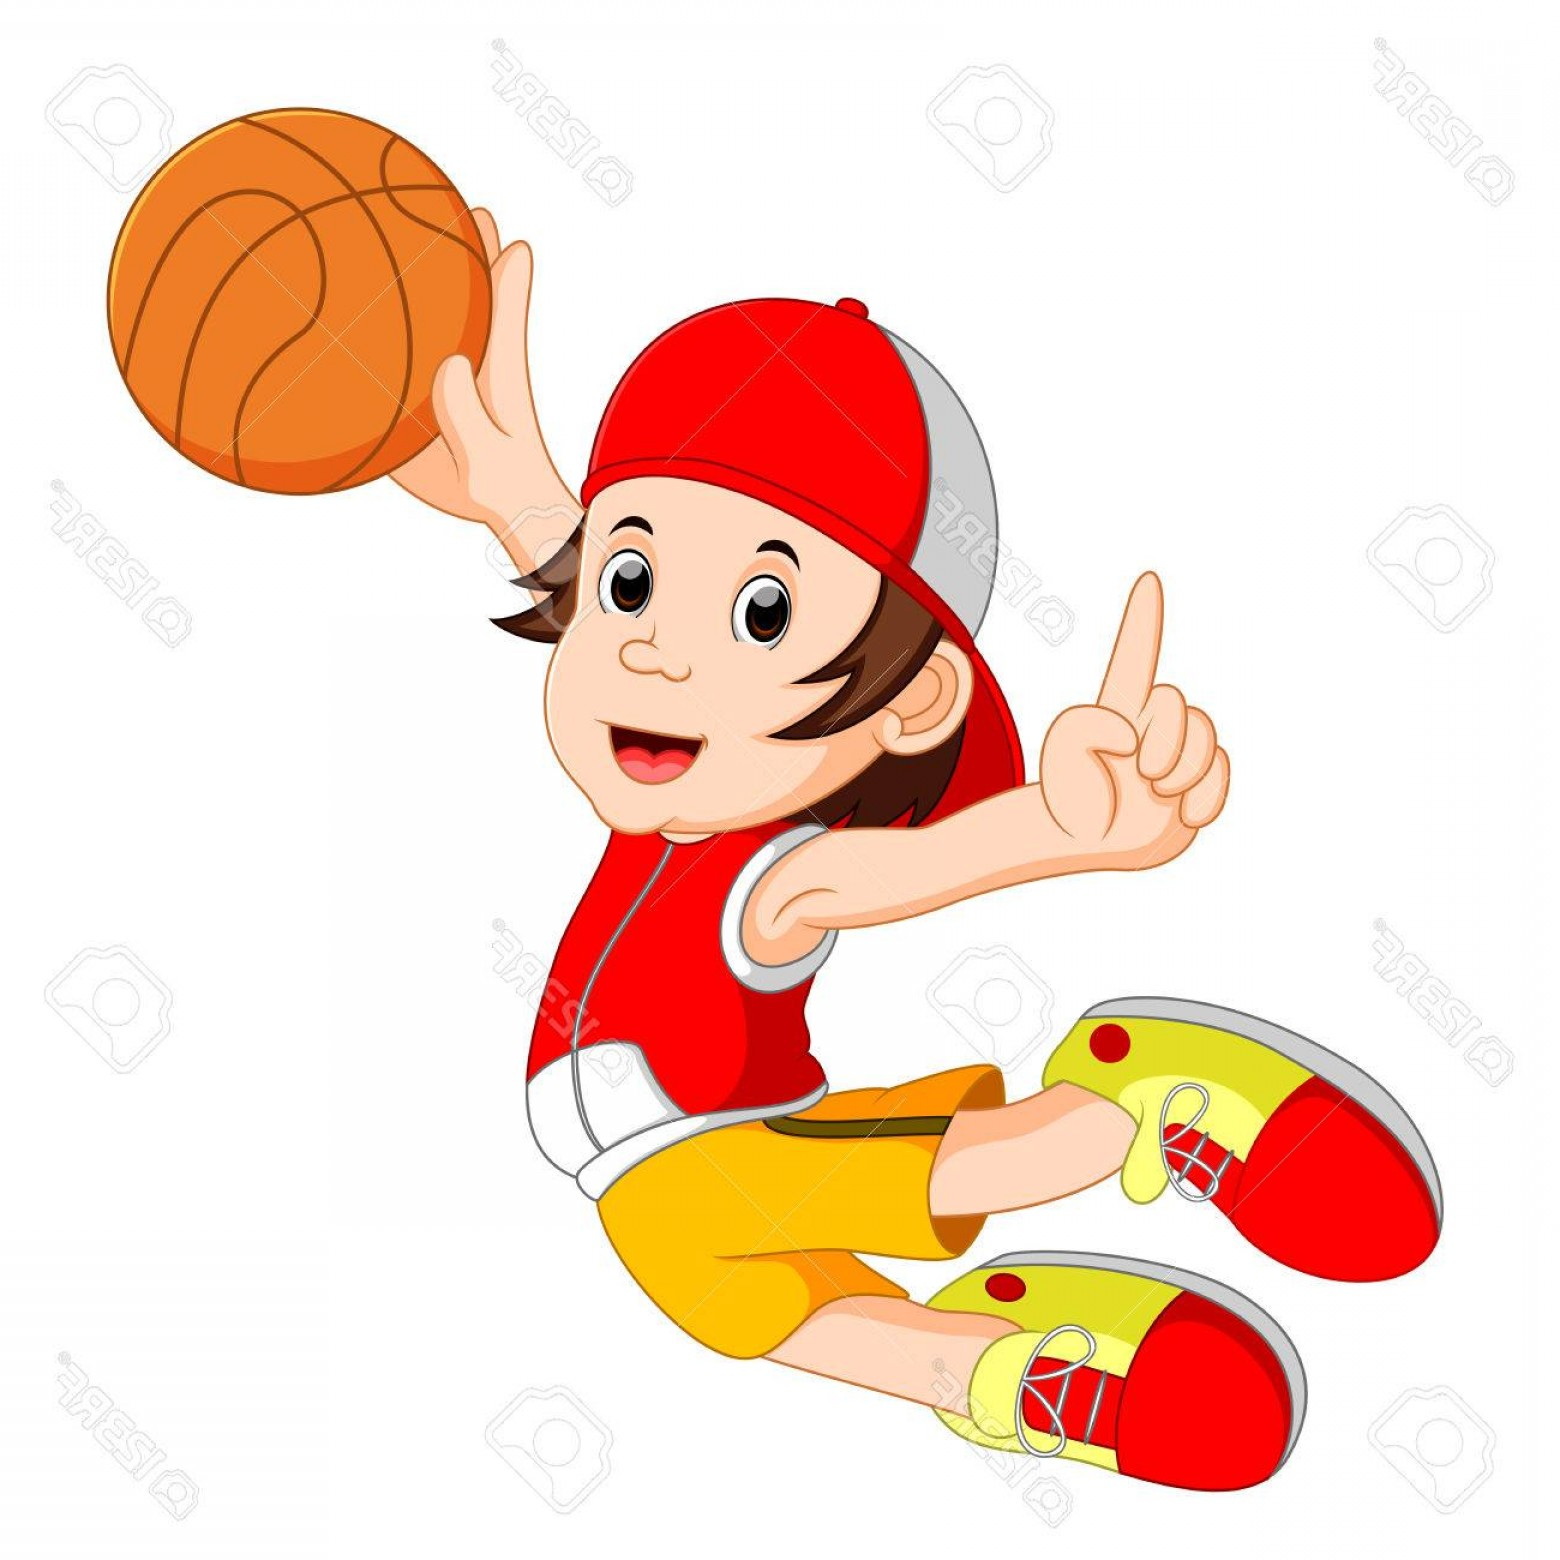 Cartoon Basketball Vector: Photostock Vector Cartoon Basketball Player Vector Illustration